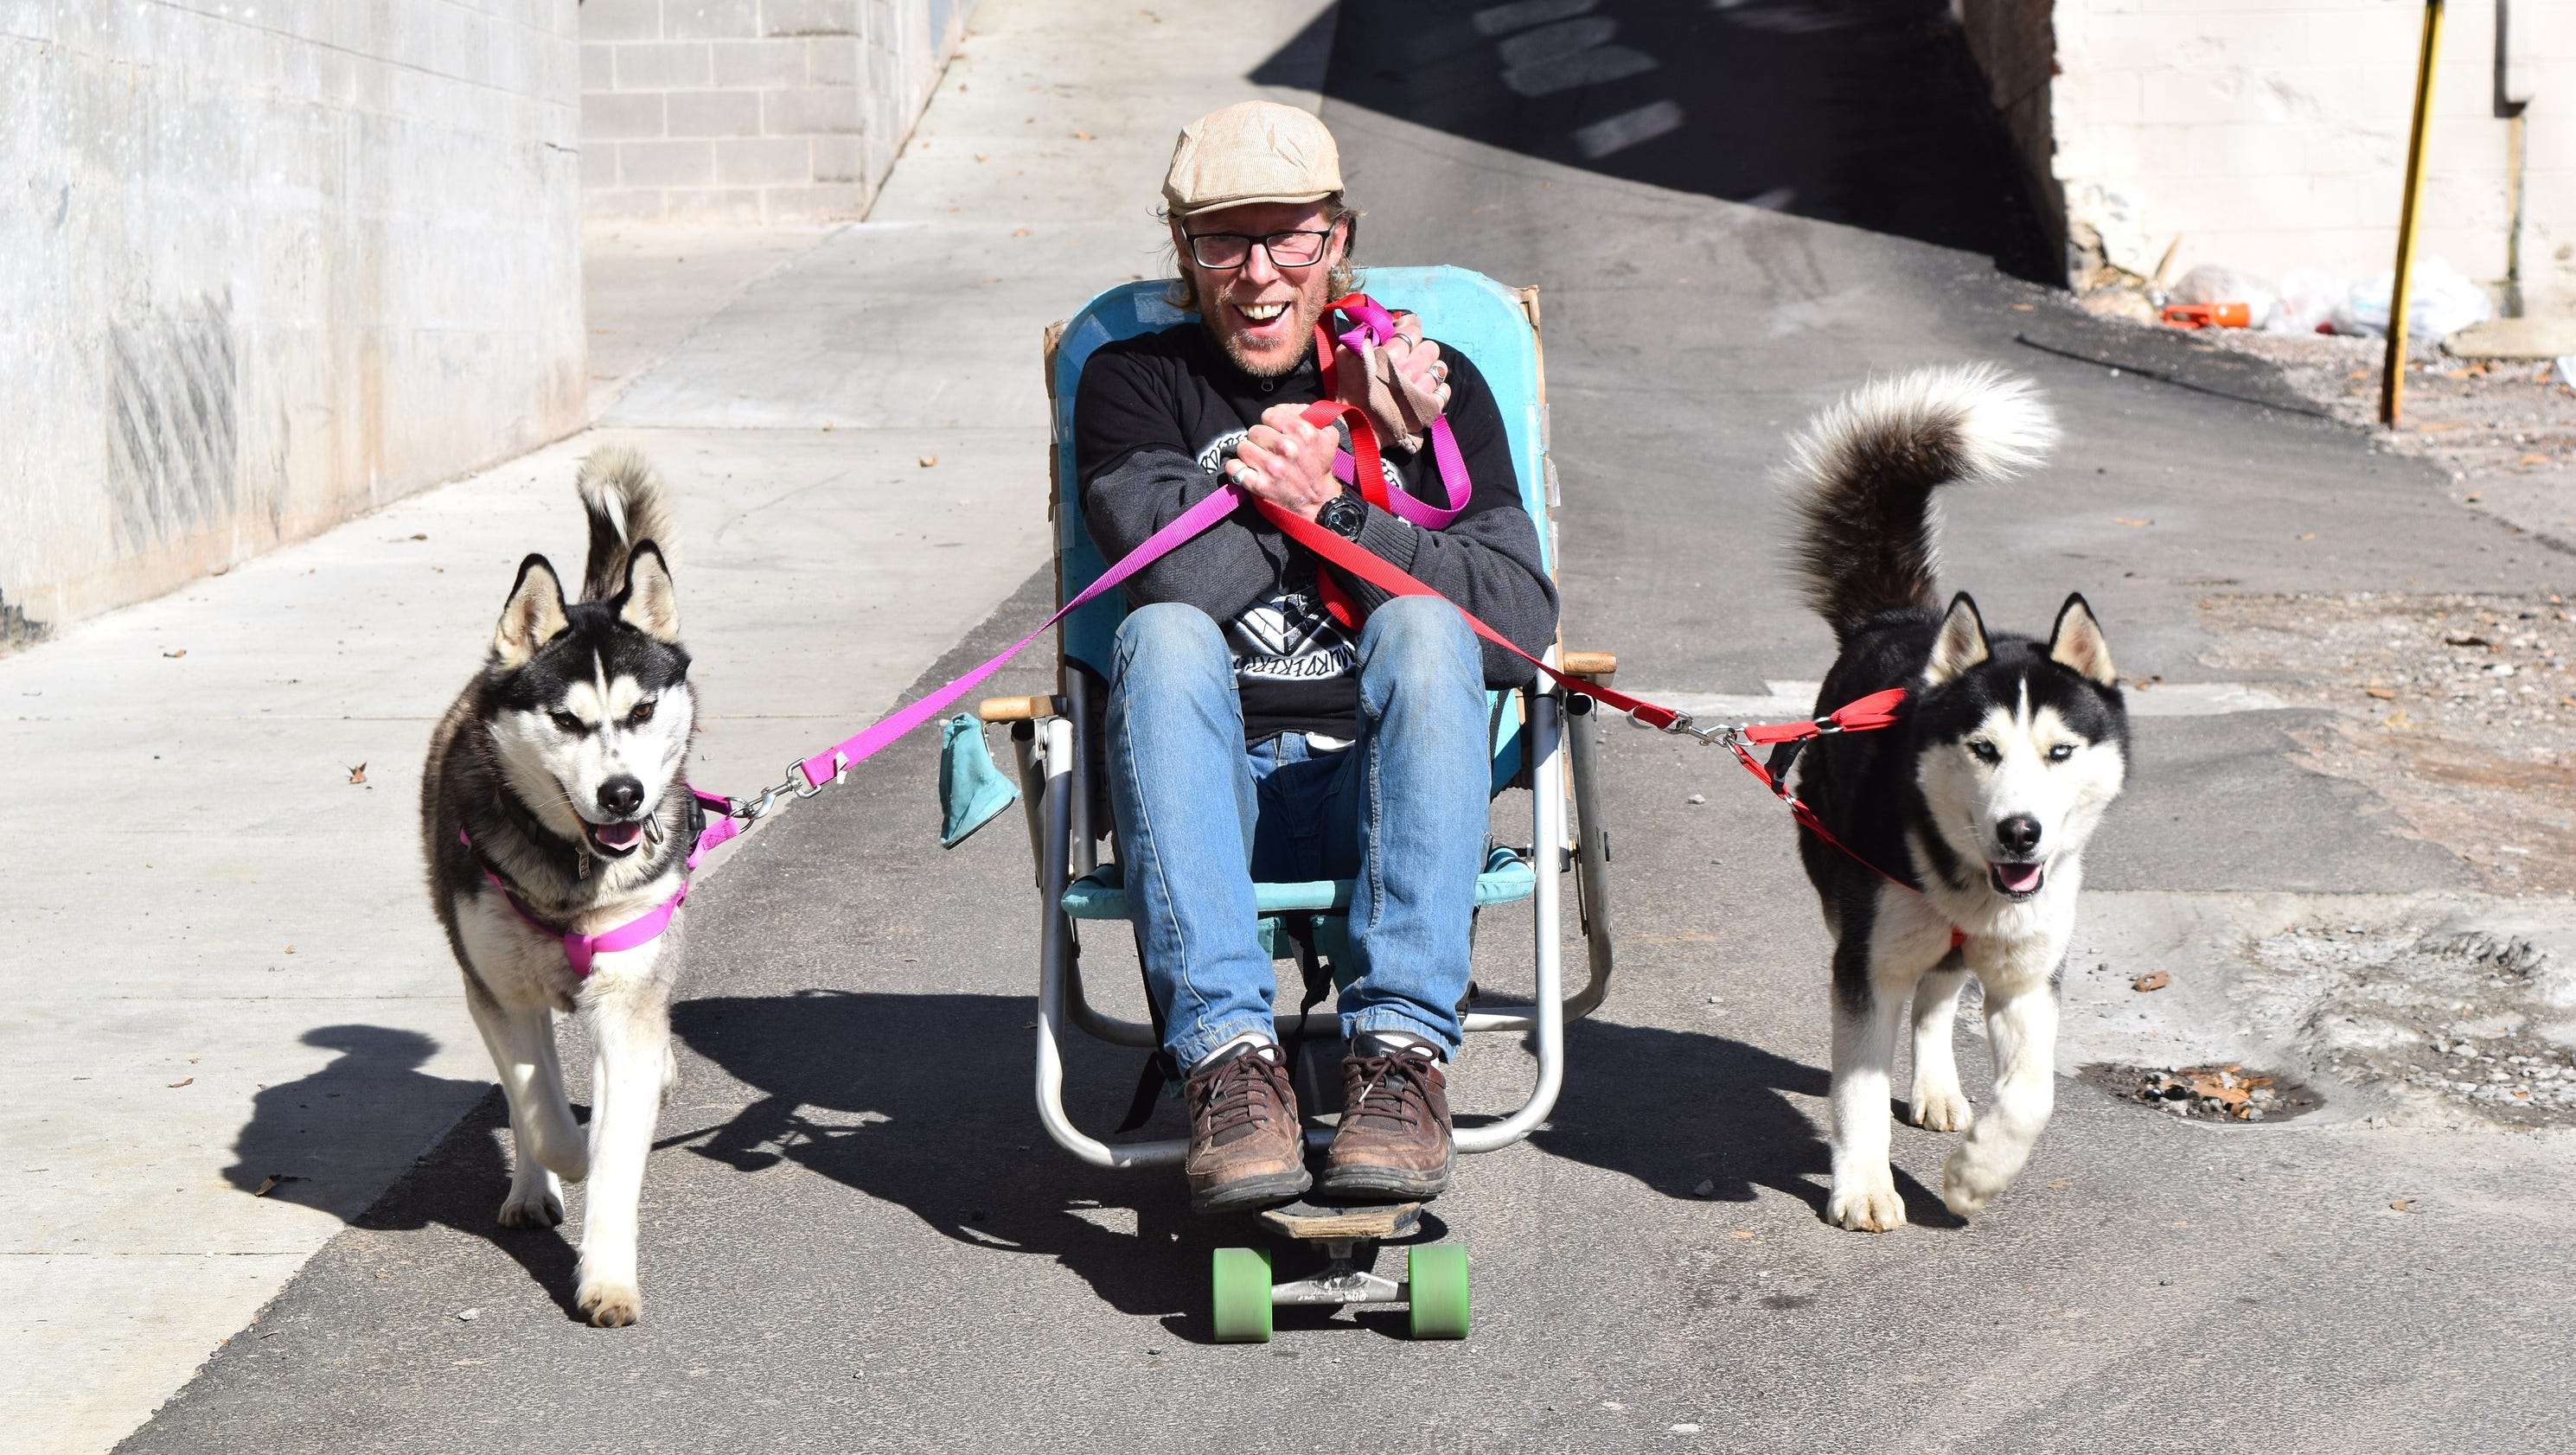 Homeless man to attempt dog sled journey from Knoxville to California